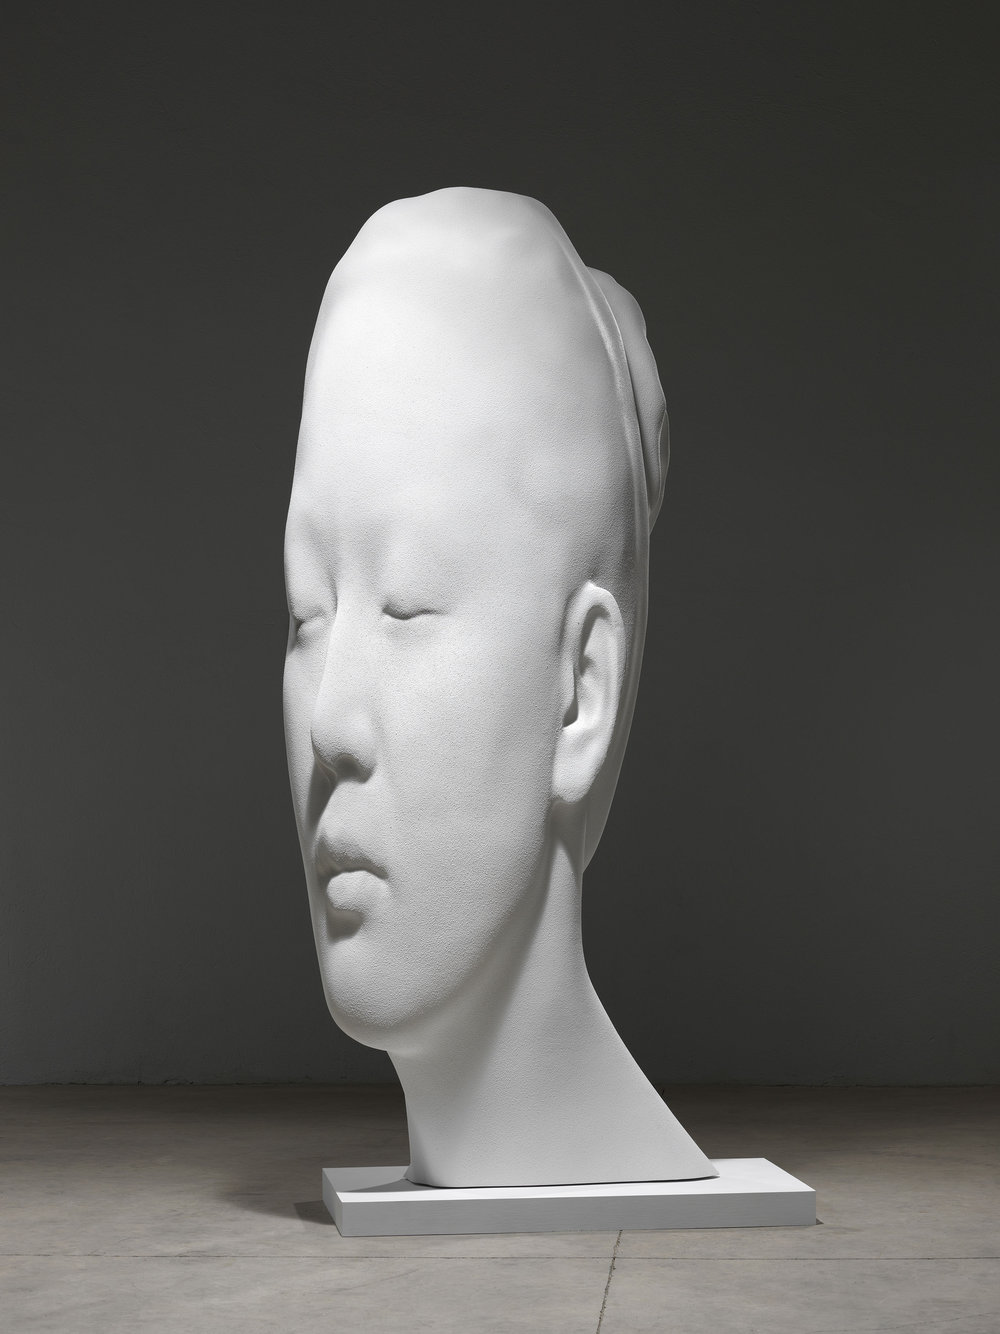 Jaume Plensa,  Laura Asia in White , 2017. Courtesy the artist and Richard Gray Gallery. Image by Gasull Fotografia, Plensa Studio Barcelona.